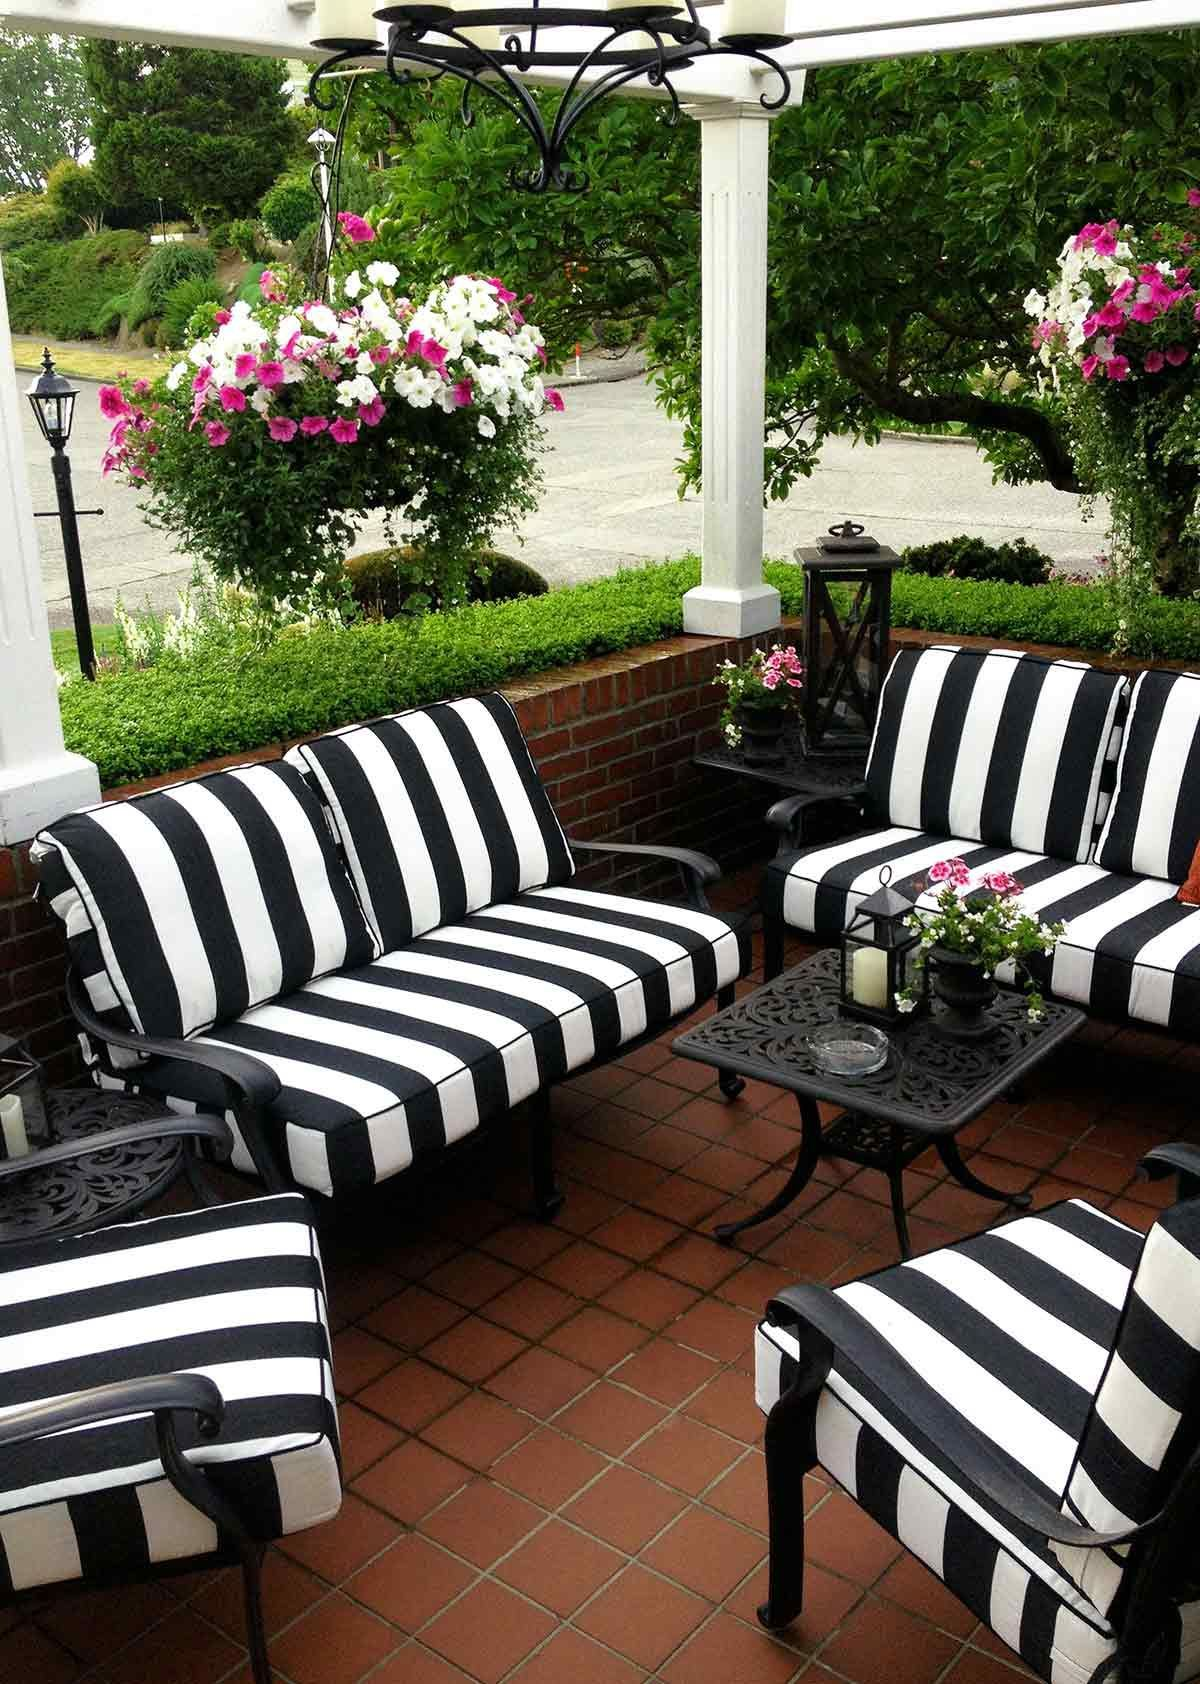 Remarkable Black And White Striped Deep Seating Cushions Backyard Home Interior And Landscaping Oversignezvosmurscom